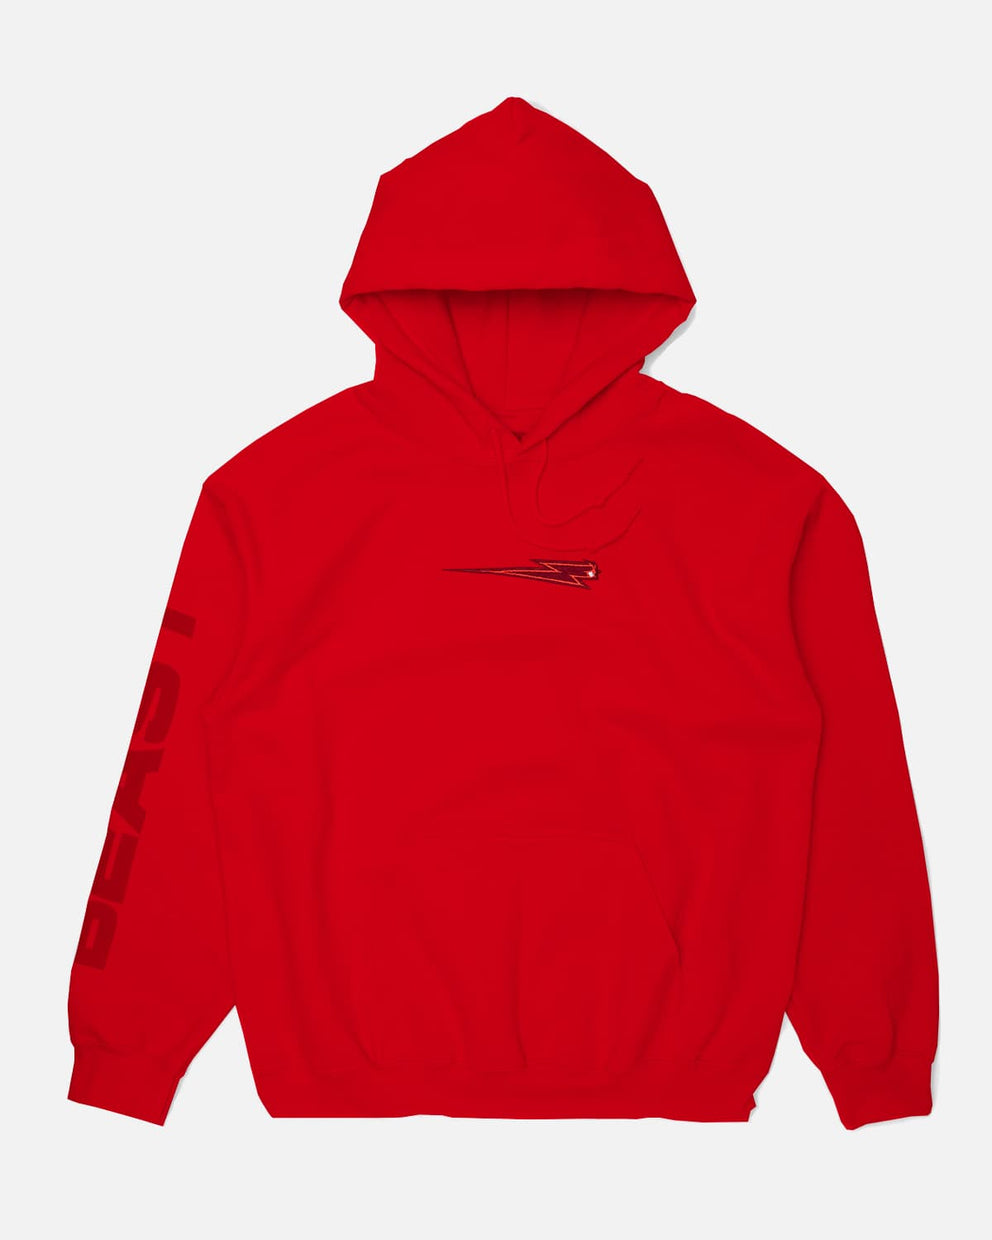 'Beast Bolt' Embroidered Pull Over Hoodie - Red